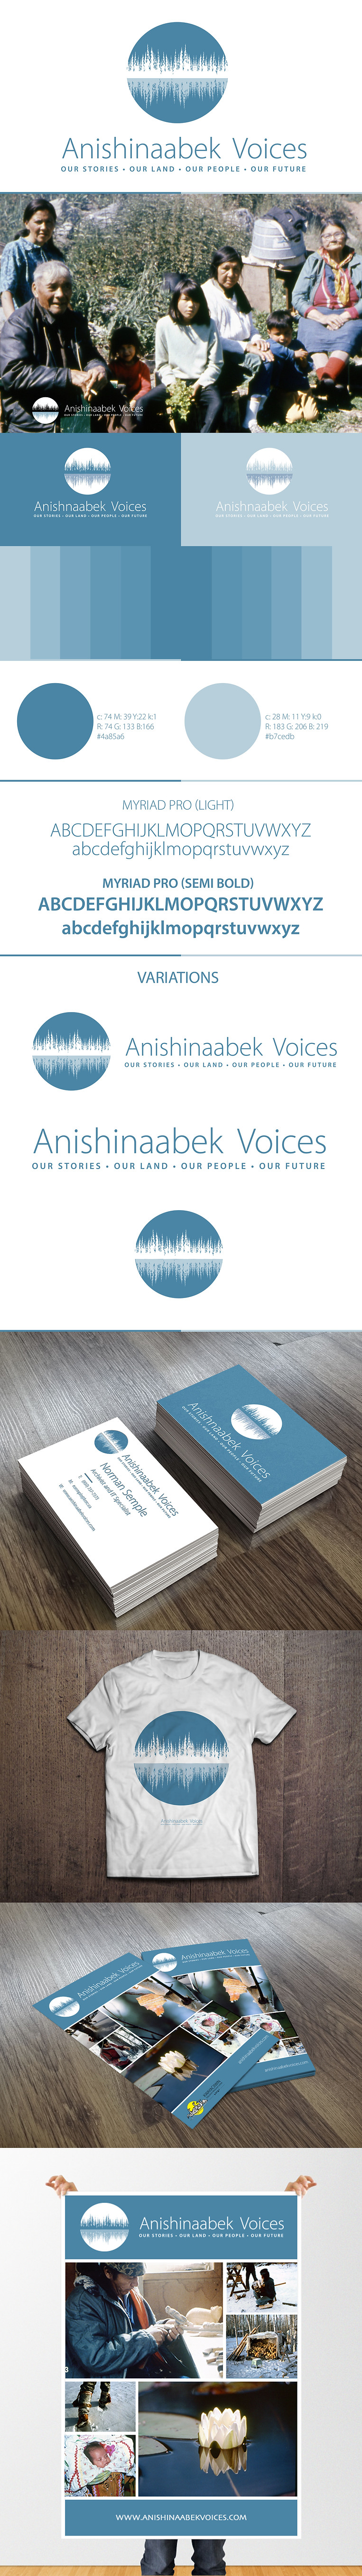 Anish-voices-logo-guide.jpg